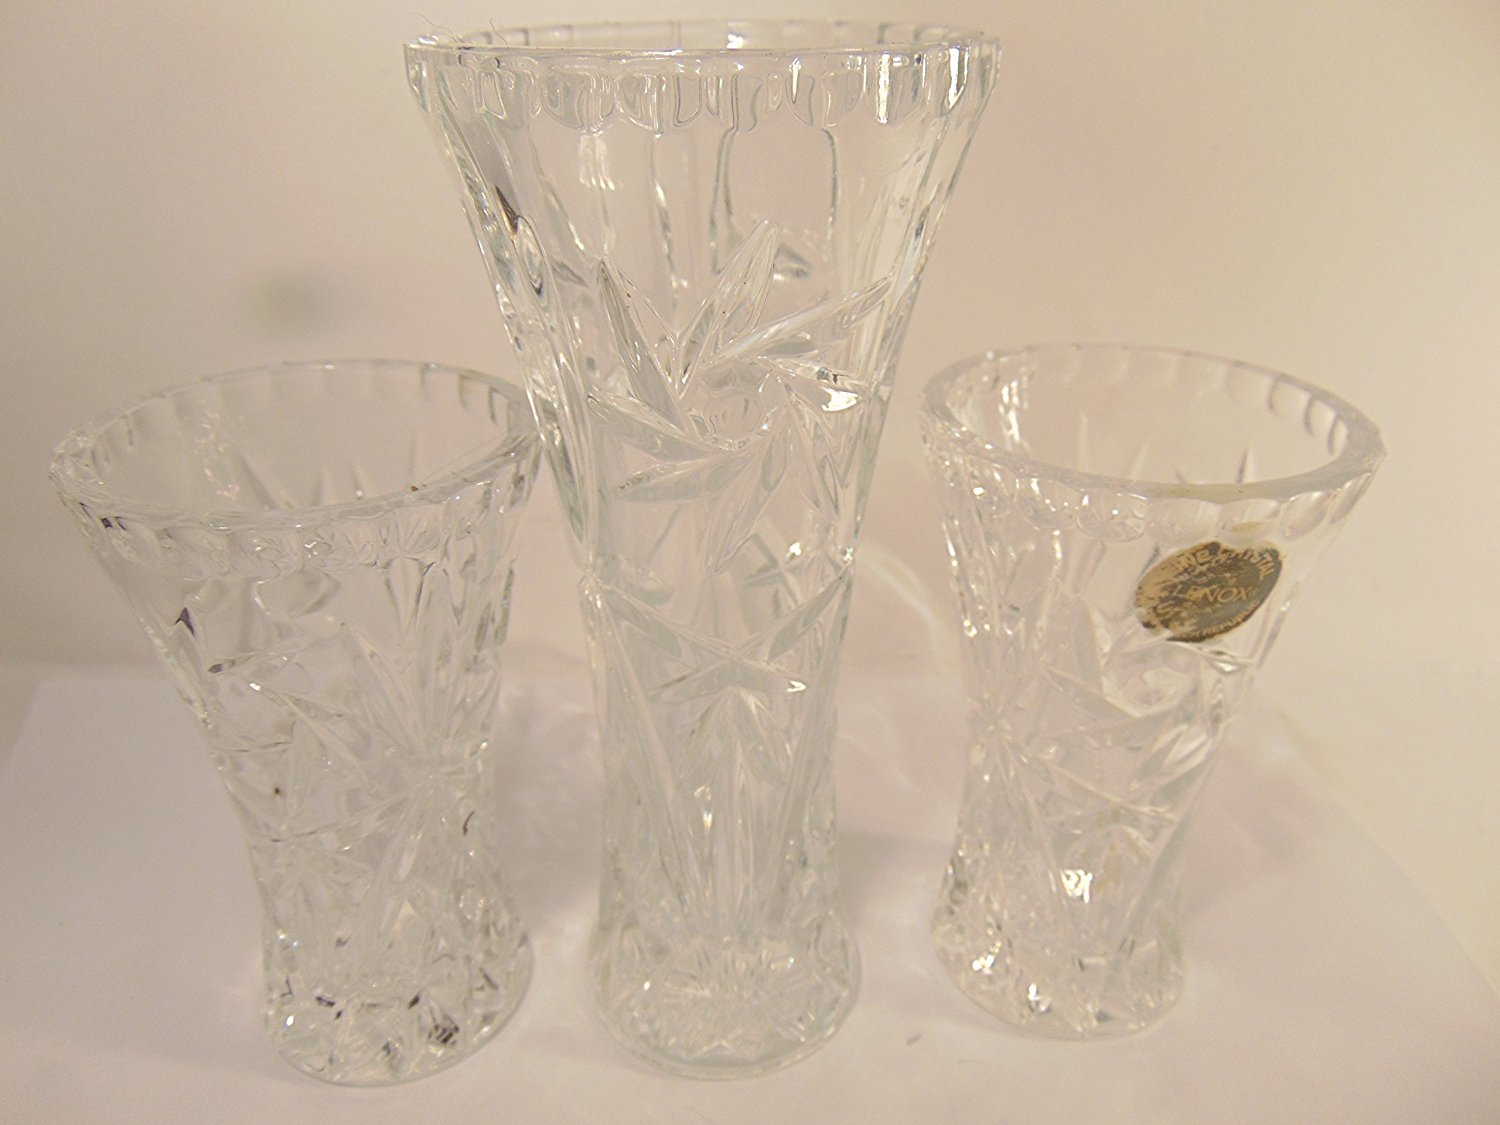 Cheap funky vases find funky vases deals on line at alibaba get quotations lenox fine lead crystal bud vases set of 3 star cut crystal vases reviewsmspy